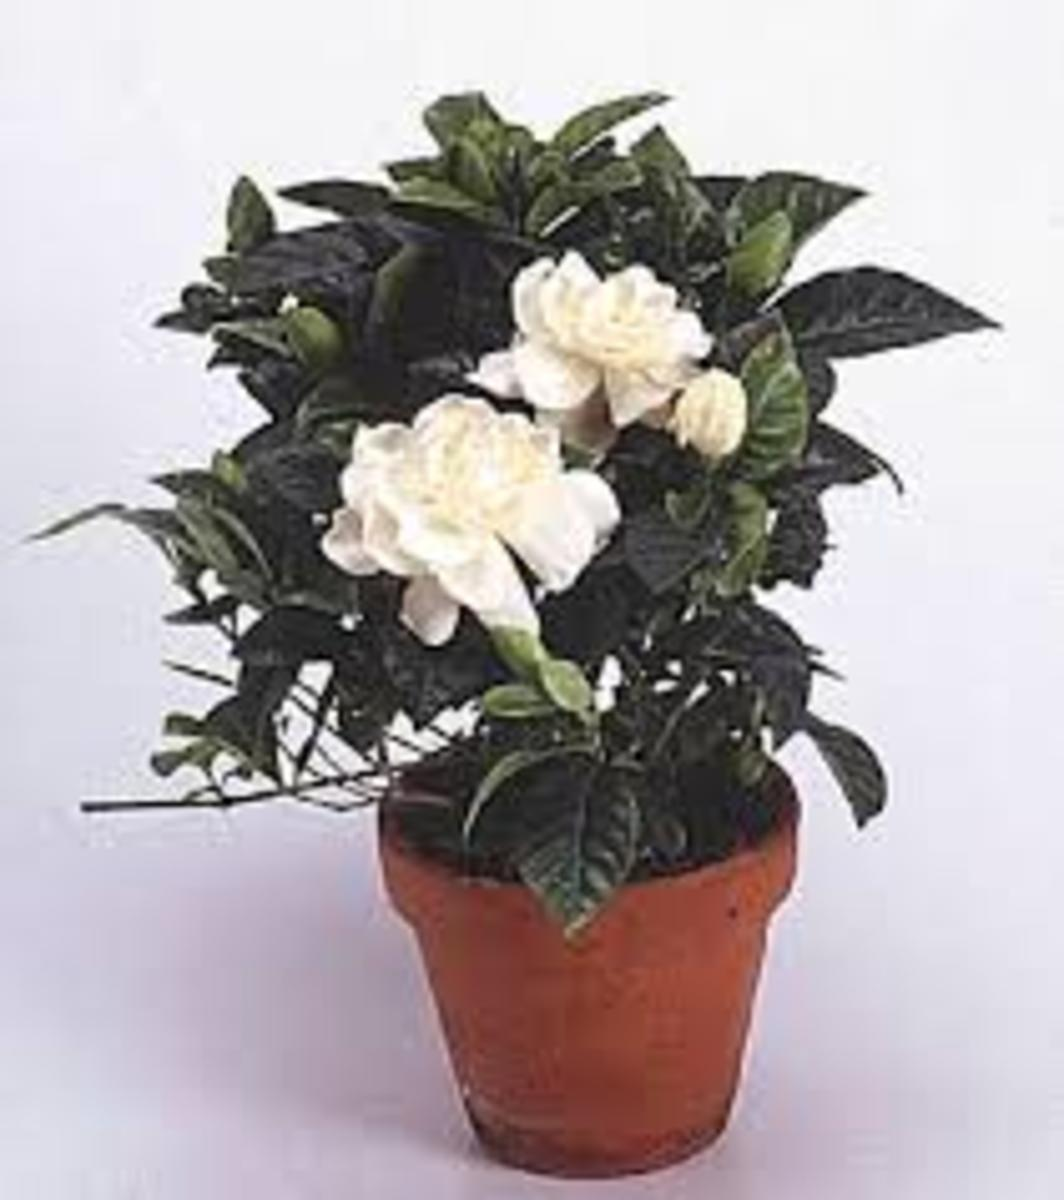 Gardenia house plant - another way to bring the lovey gardenia inside the house.